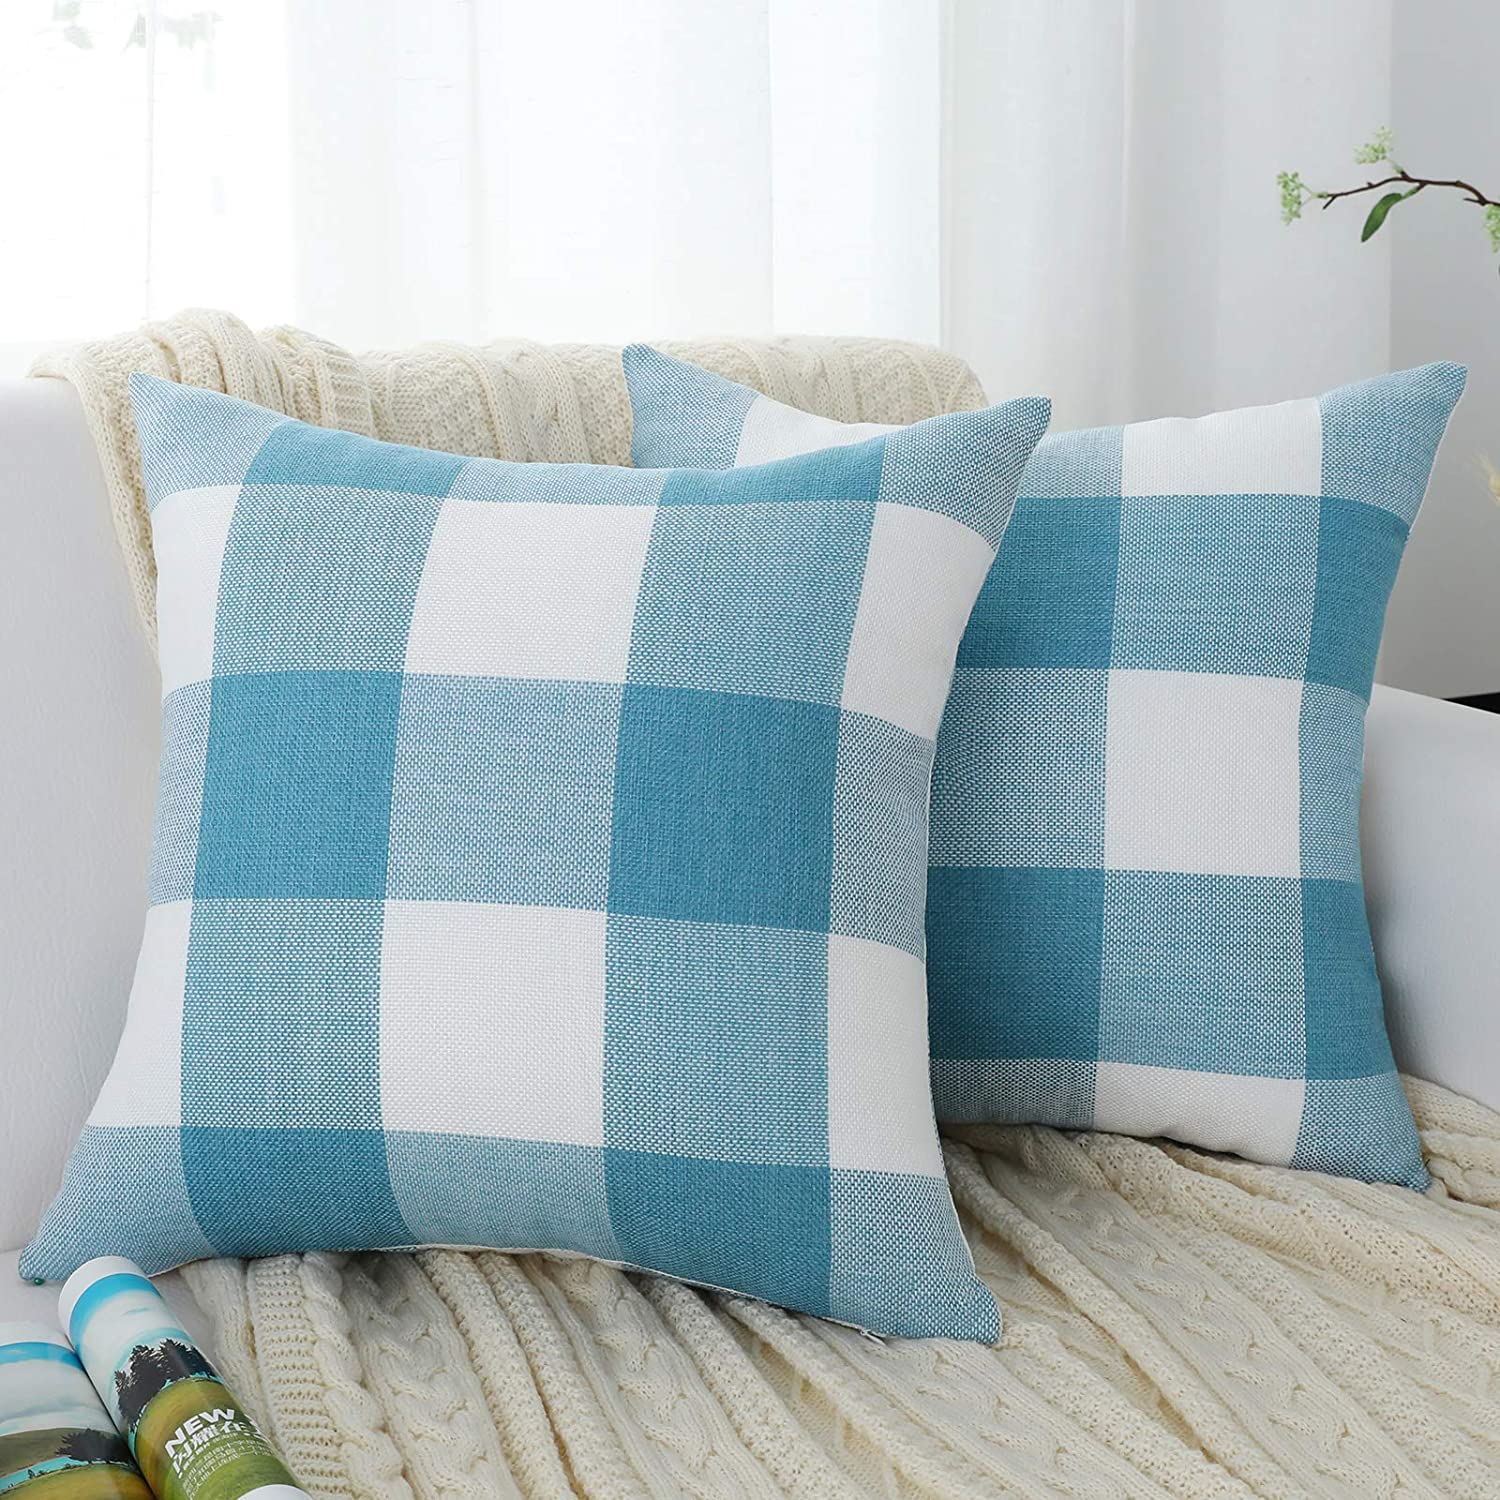 QOPOYU Set of 2 Decorative Farmhouse Line Throw Pillow Covers Plaid Buffalo Check Pillowcases for Home Decor,Couch Sofa Bedroom(Blue and White 20 x 20 Inches)